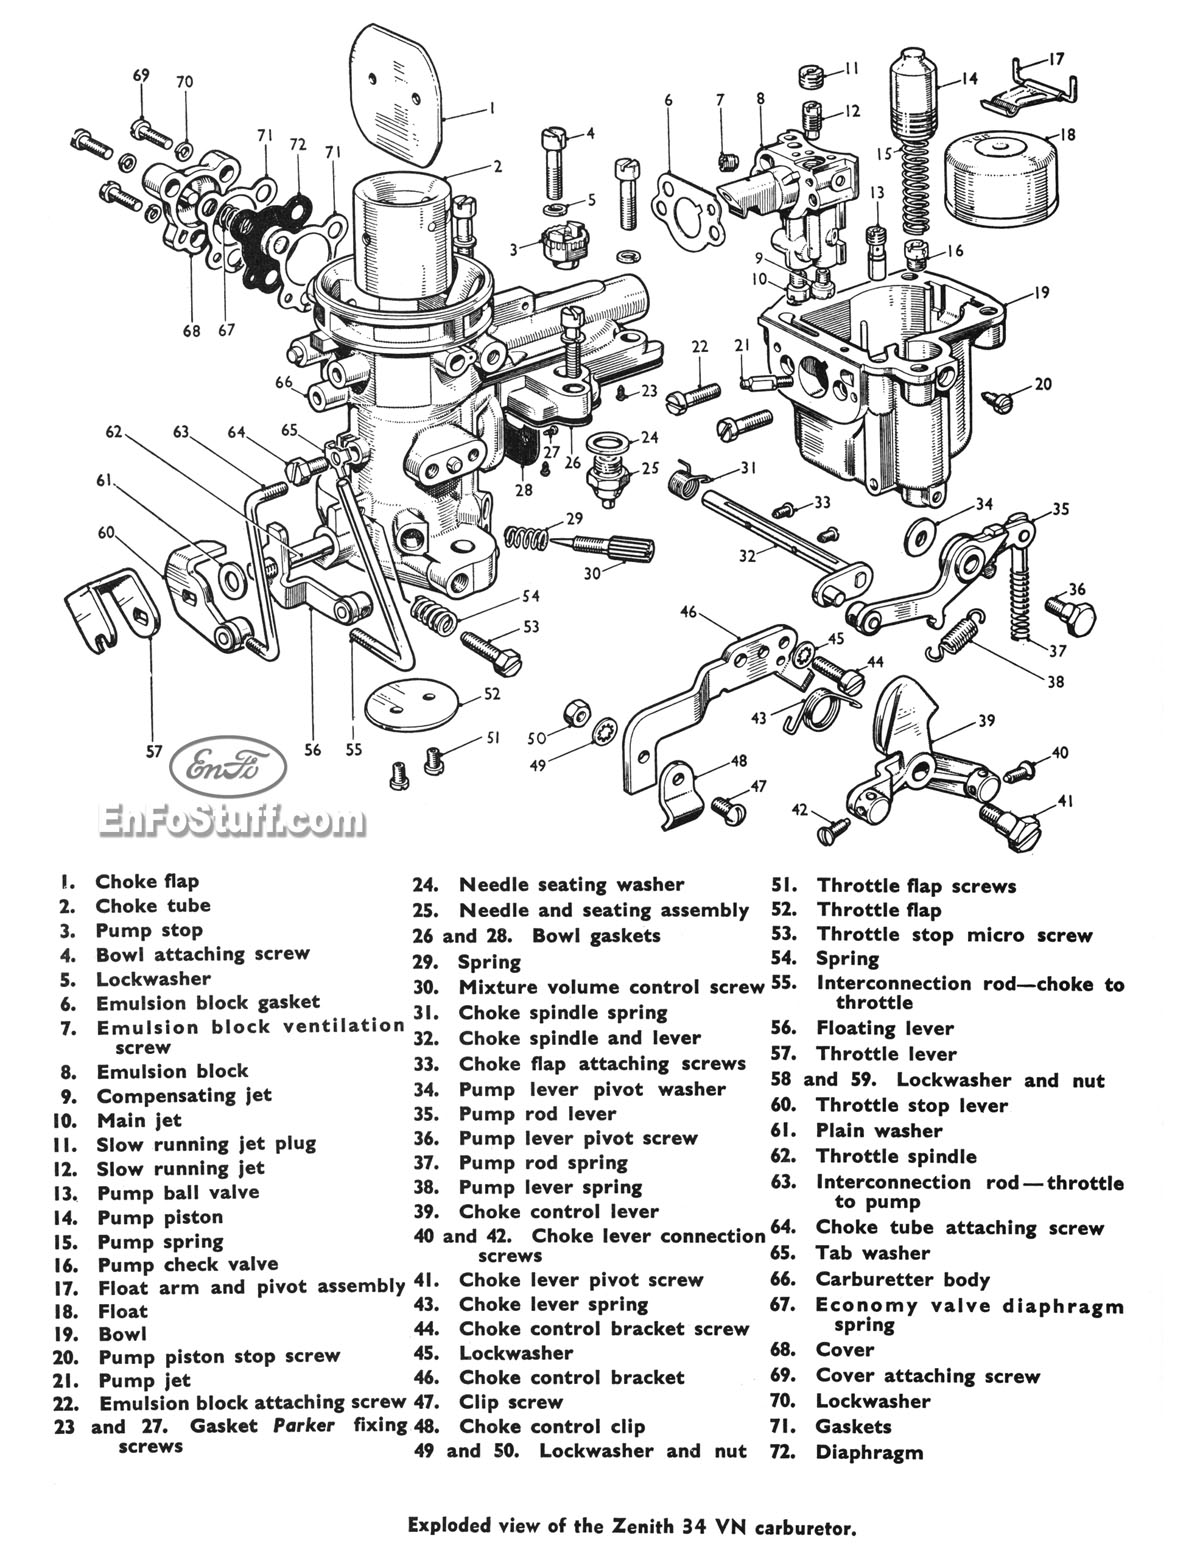 carburetor diagram zenith 34 vn consul mkii and consul 315 rh enfostuff com zenith carburetor diagram Zenith Carburetors for Tractors International